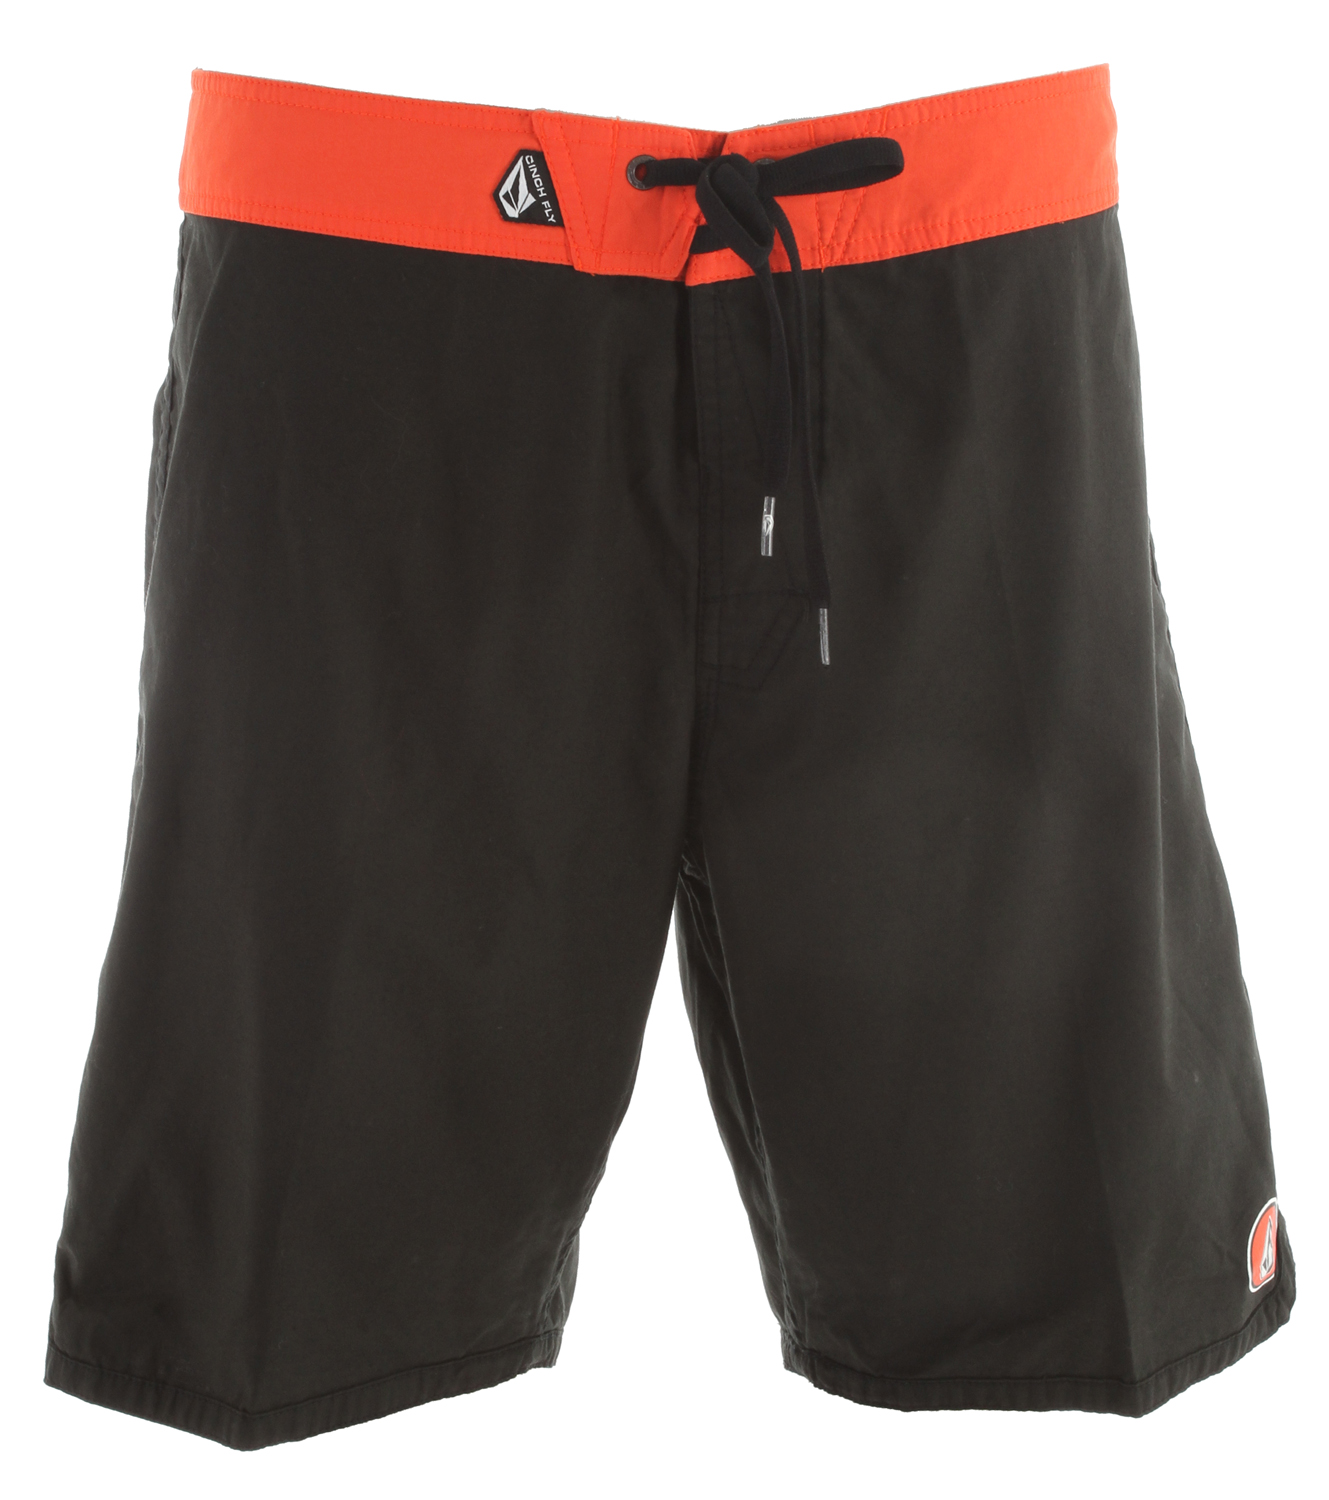 "Surf Key Features of the Volcom Dredge Boardshorts: 18"" outseam boardshort Inseam, scallop body Contrast waitband, contast back pocket and taping Cinch Fly Technology 52% Nylon/48% Cotton - $36.95"